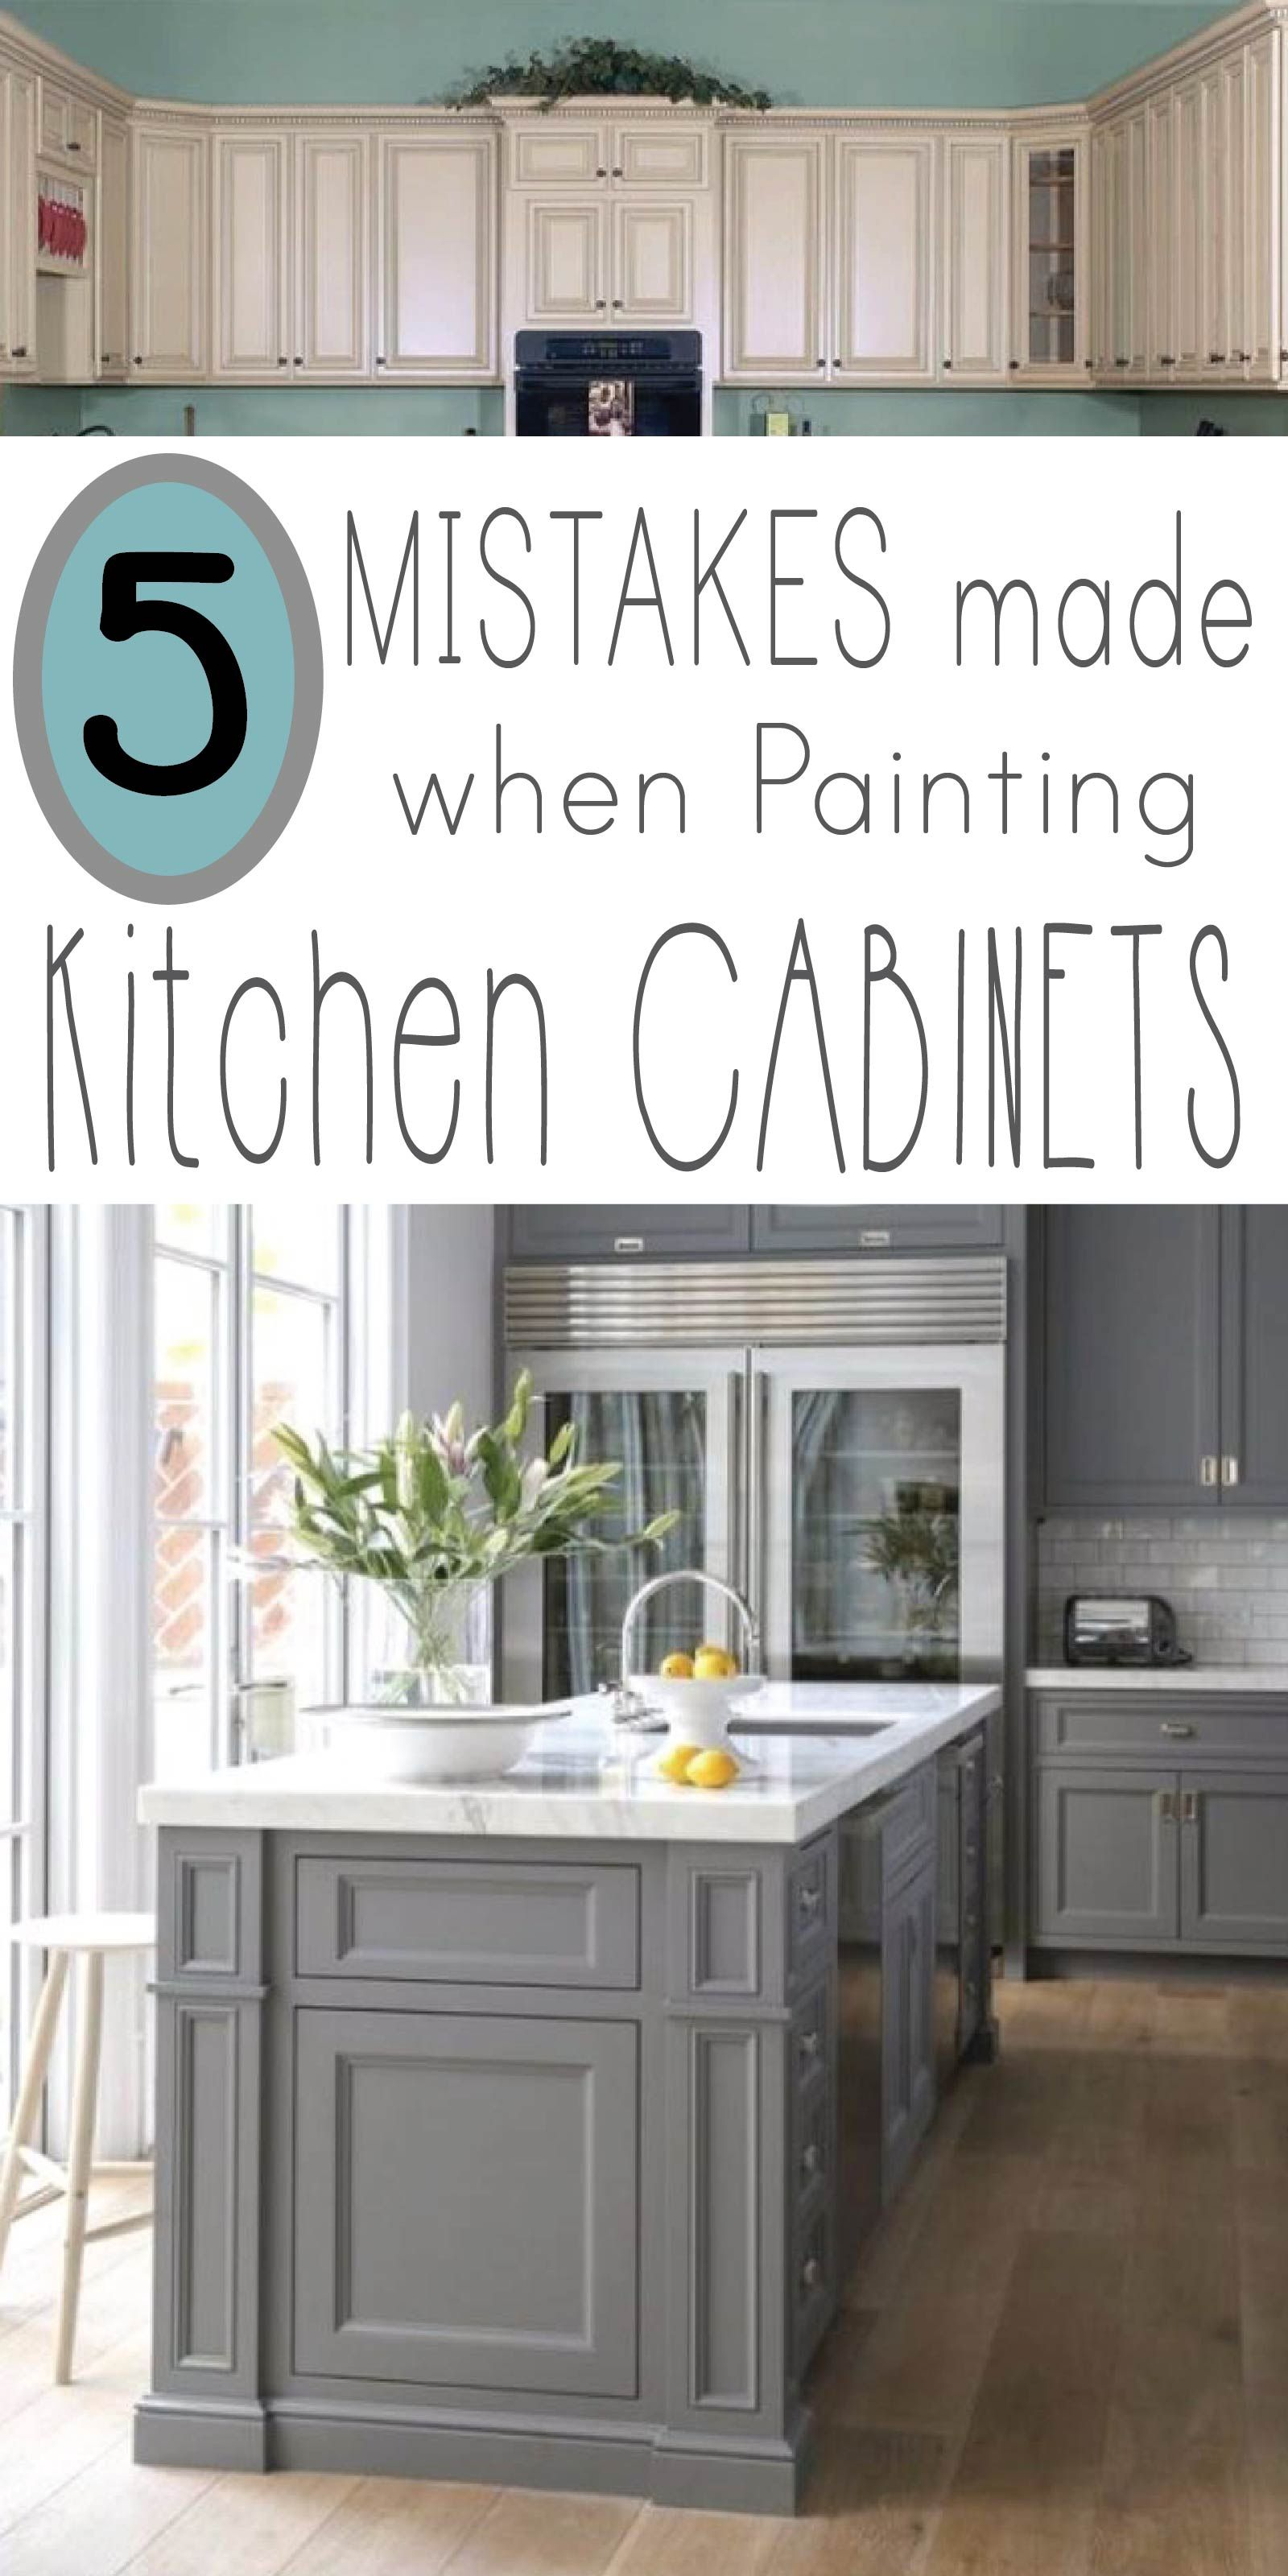 Learn 5 mistakes made when painting kitchen cabinets so your makeover project is professional looking